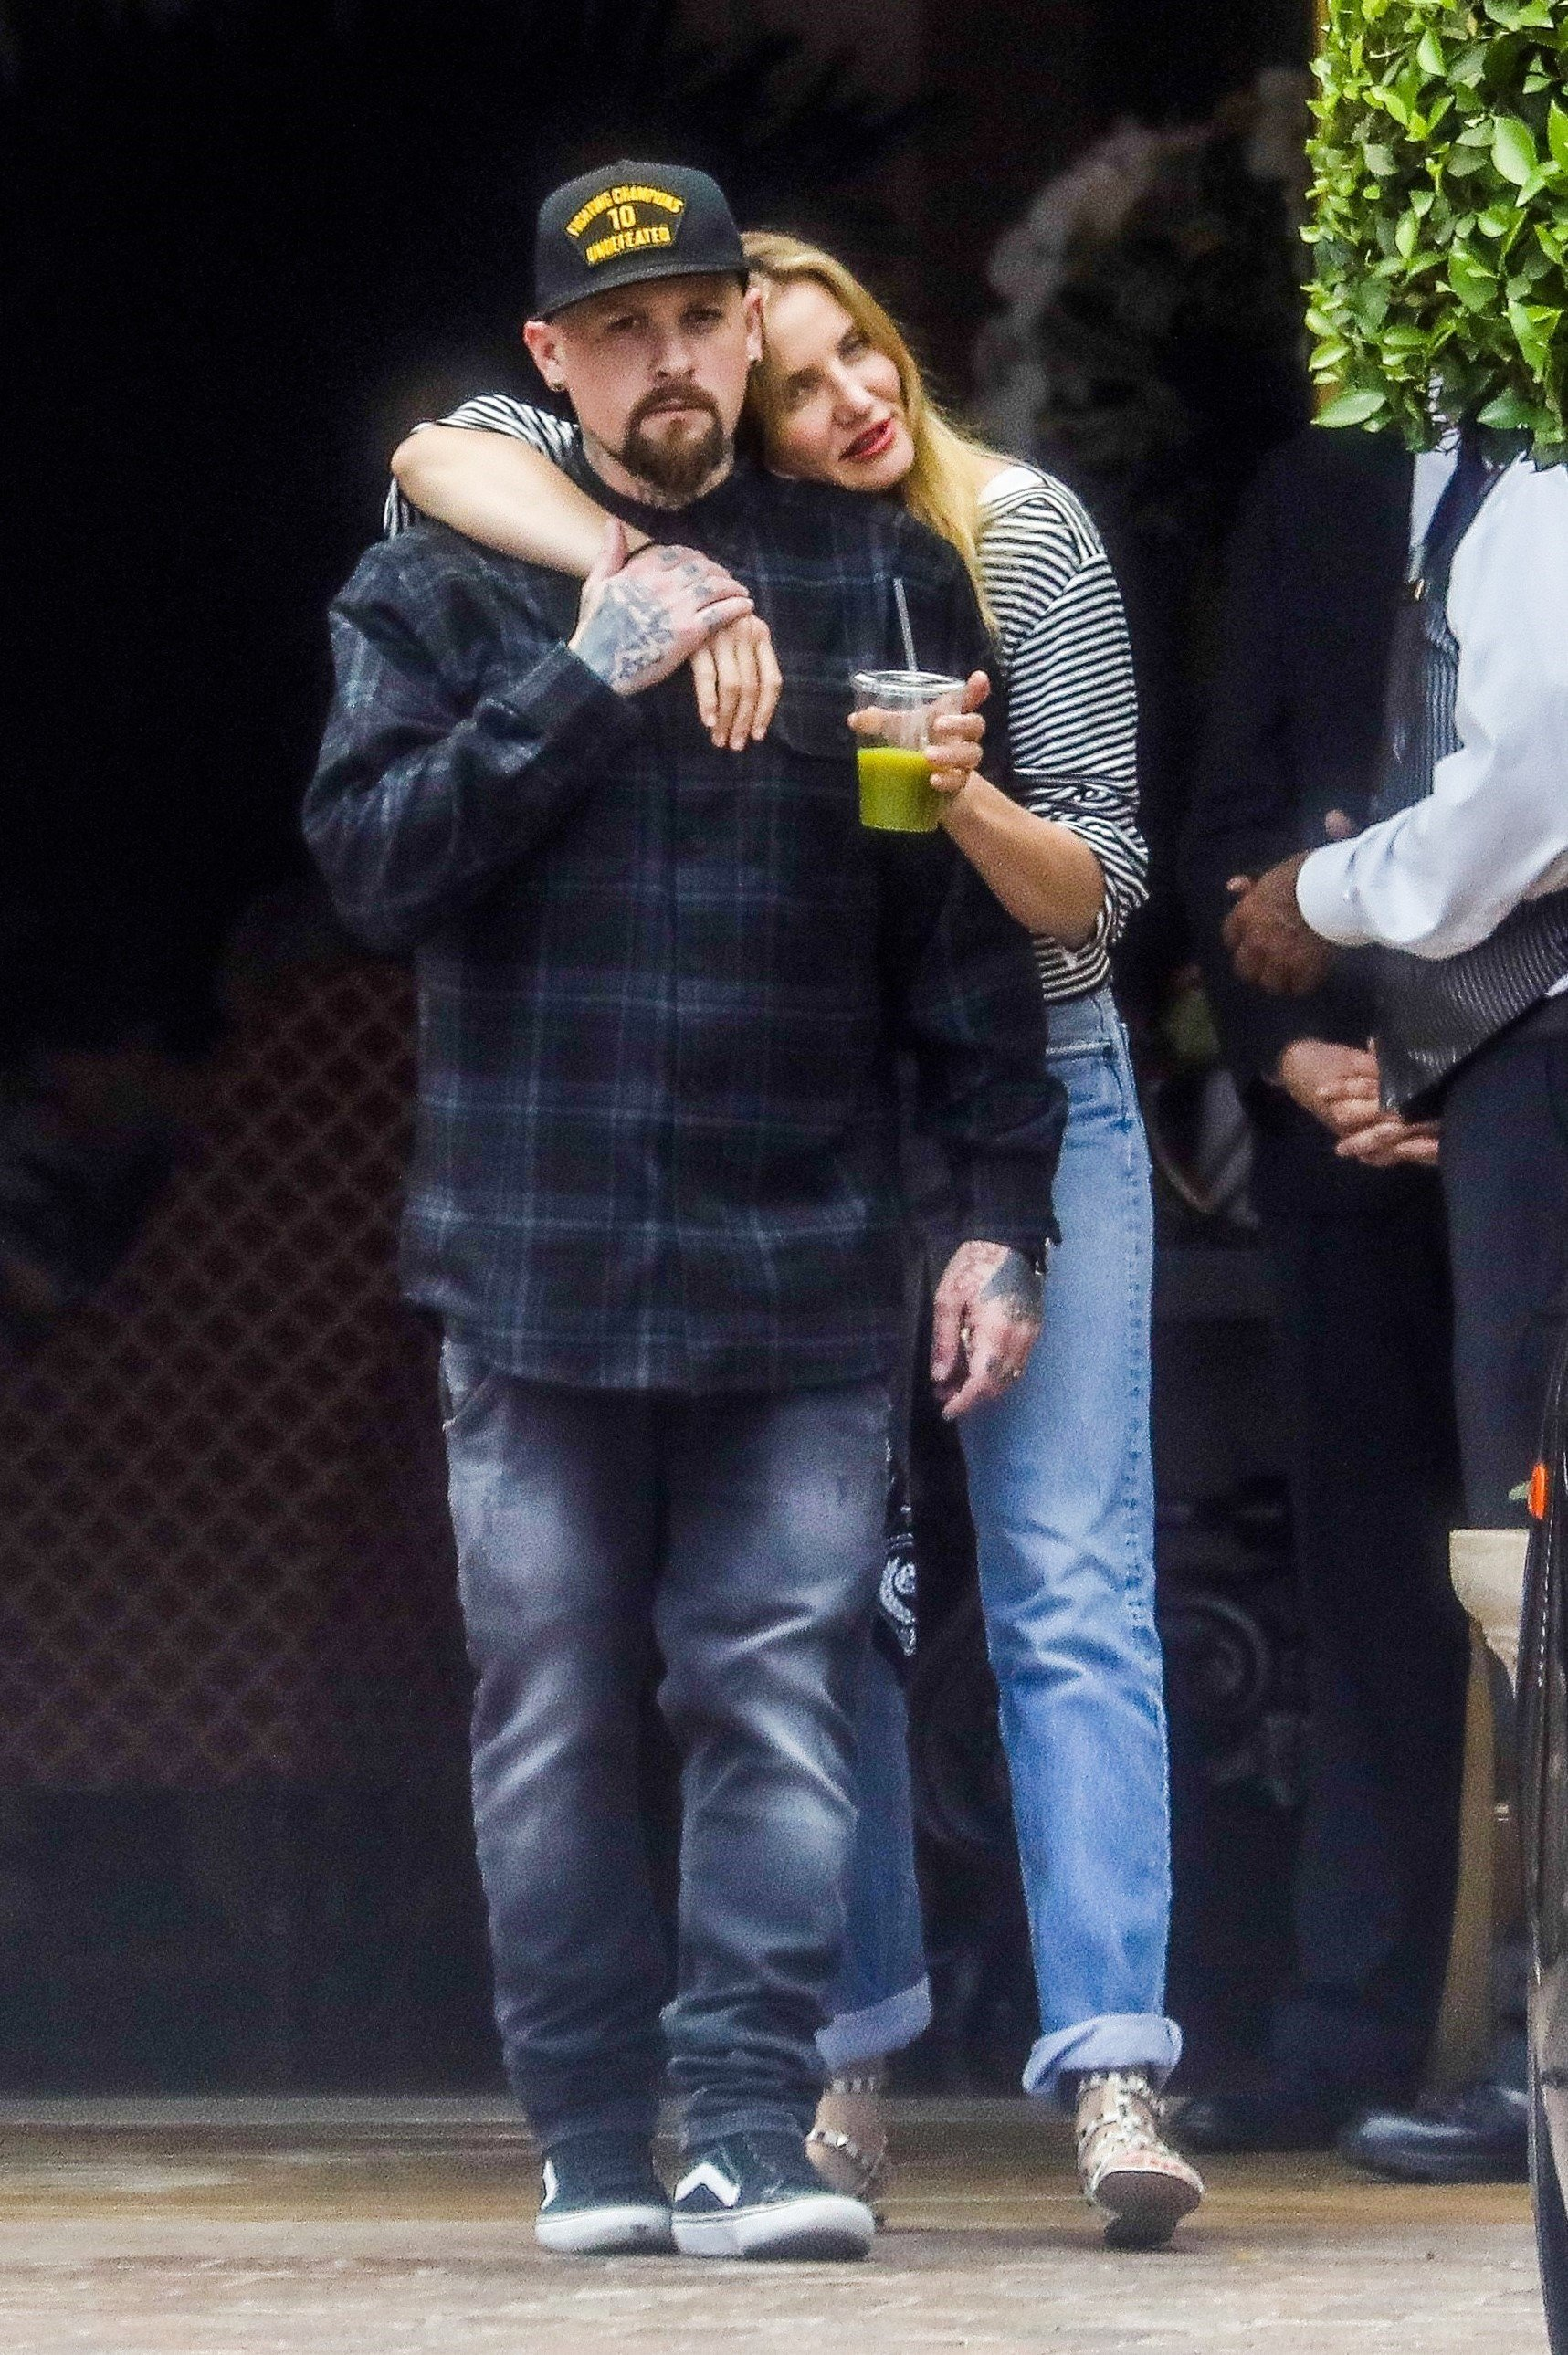 *EXCLUSIVE* Beverly Hills, CA  - Cameron Diaz and Benji Madden show some PDA after lunch at Bouchon. The two are in a good mood as they head to All Saints for some after lunch retail therapy.  Pictured: Cameron Diaz, Benji Madden  BACKGRID USA 5 JUNE 2017   USA: +1 310 798 9111 / usasales@backgrid.com  UK: +44 208 344 2007 / uksales@backgrid.com  *UK Clients - Pictures Containing Children Please Pixelate Face Prior To Publication*, Image: 335203434, License: Rights-managed, Restrictions: , Model Release: no, Credit line: Profimedia, AKM-GSI